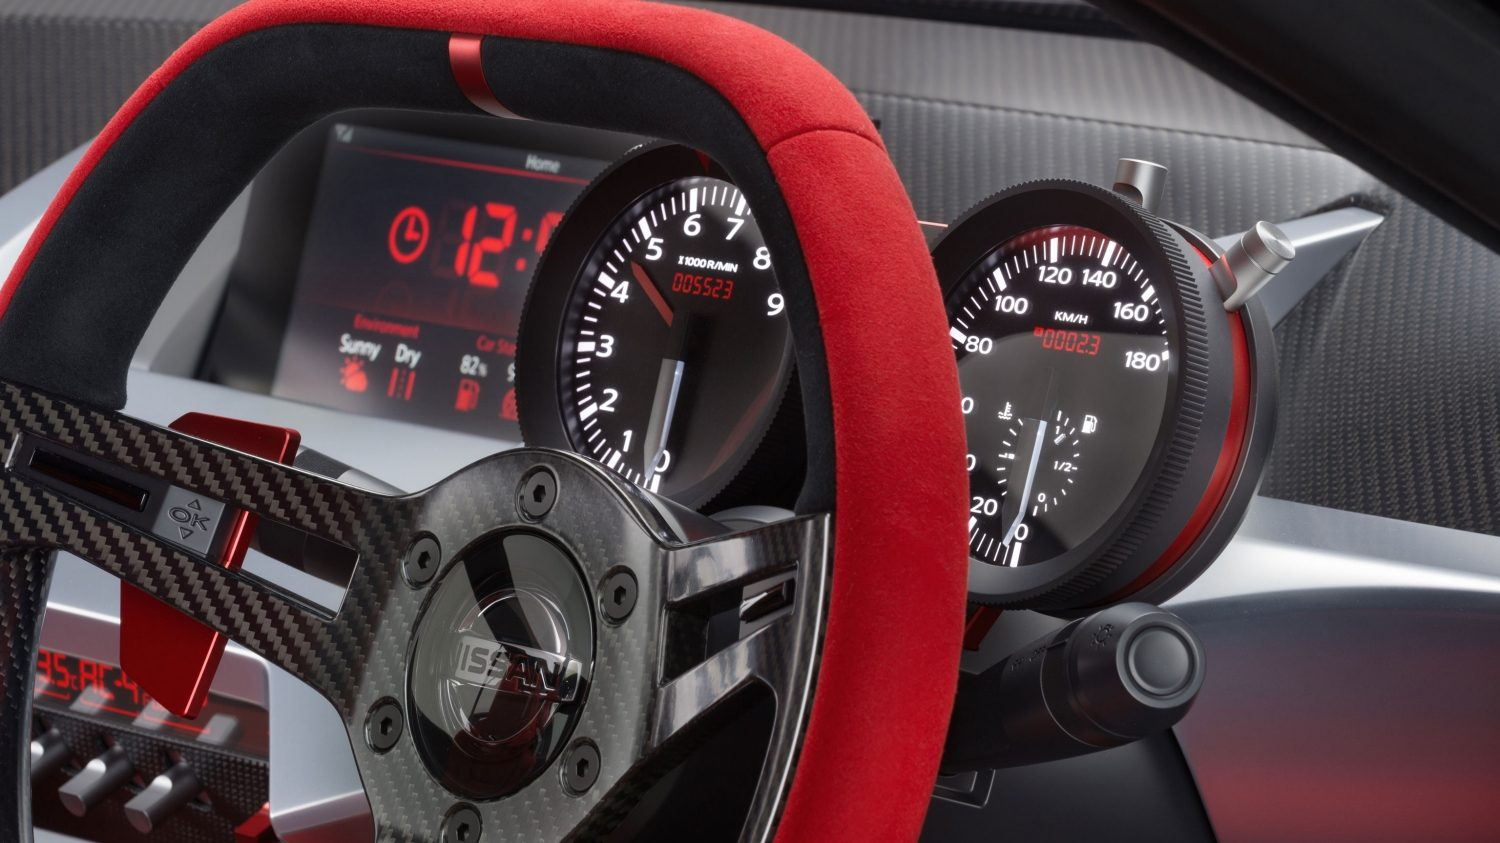 Nissan IDX NISMO Concept. Gallery gauges.